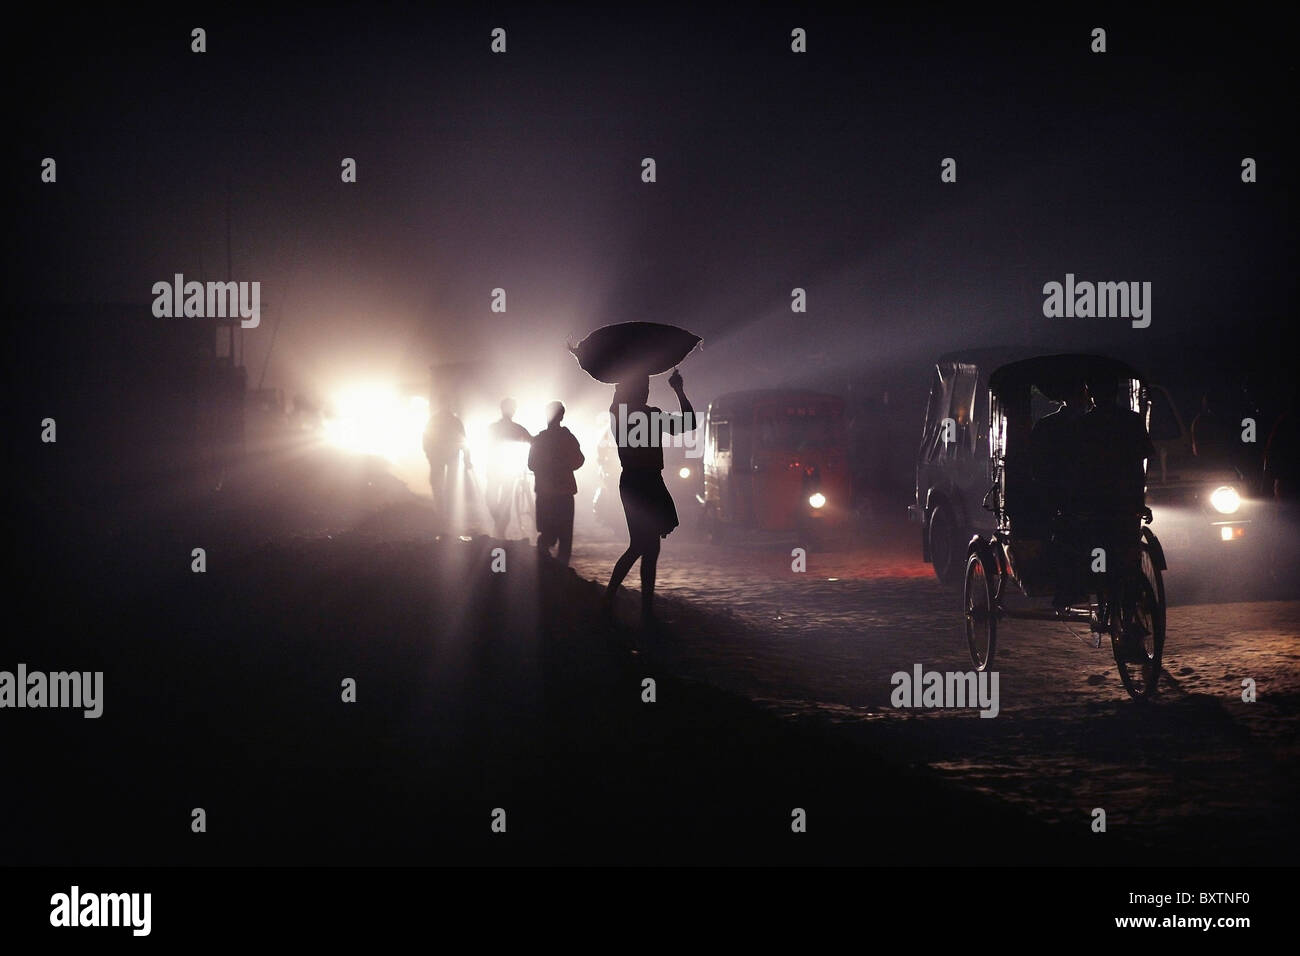 Silhouettes Of Traffic And People Carrying Sacks On Their Heads At Night - Stock Image